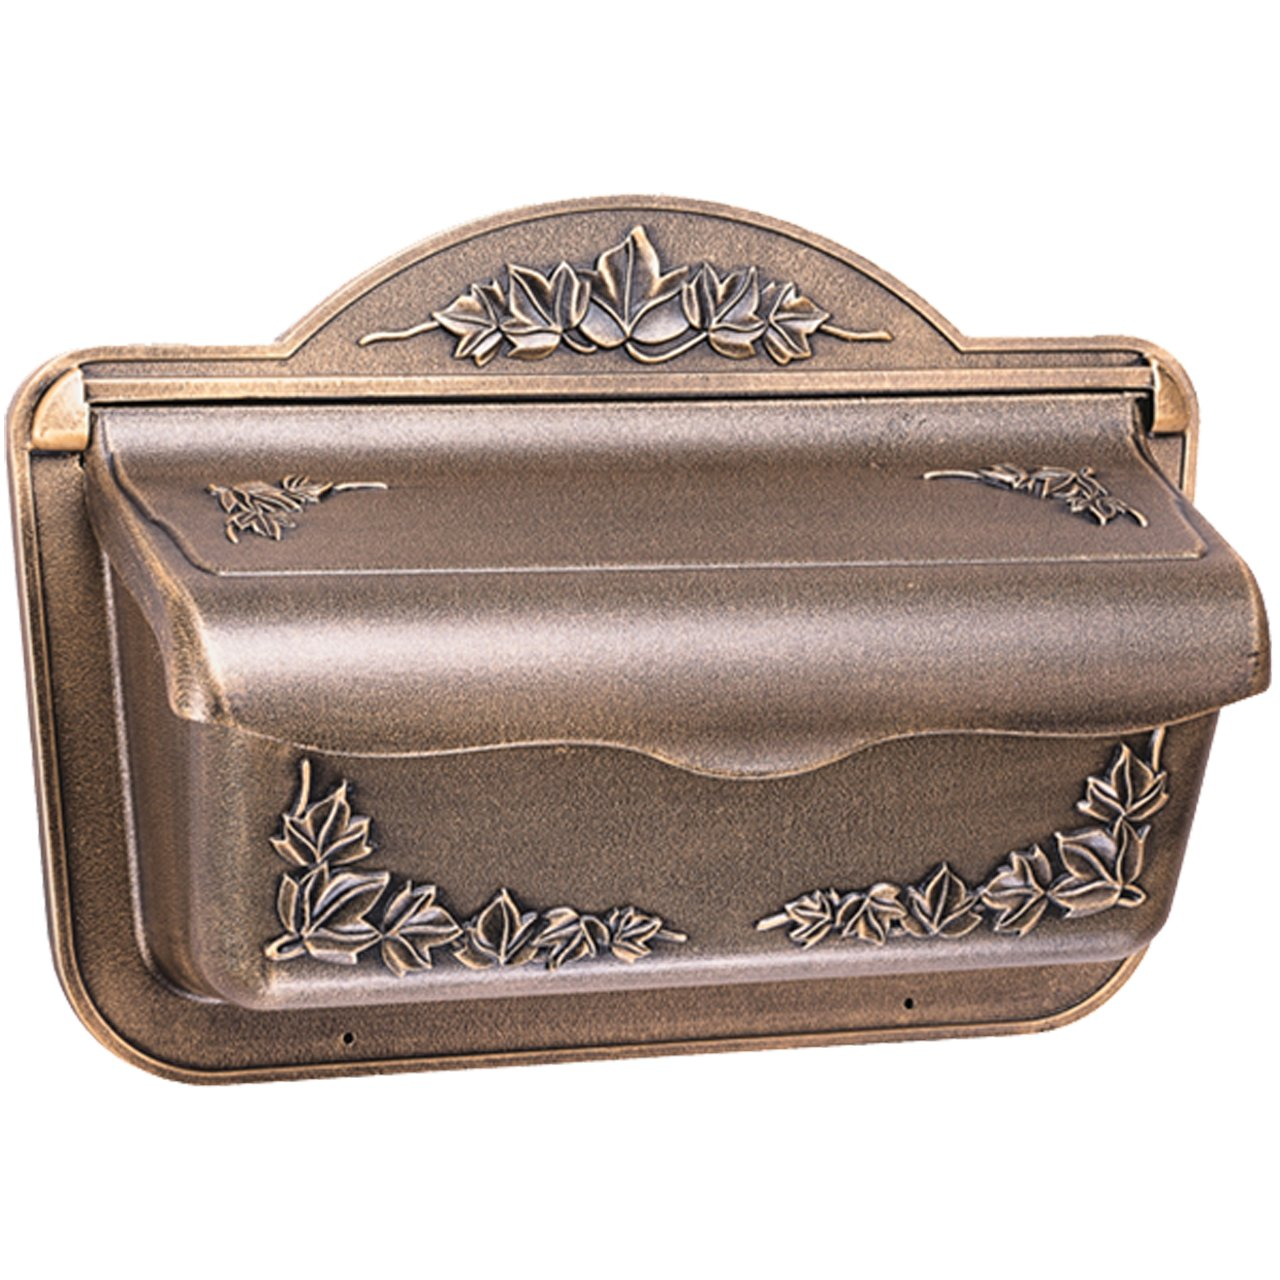 residential mailboxes wall mount. gibraltar cah304bz ivy design cast aluminum wall mount mailbox large amazoncom residential mailboxes